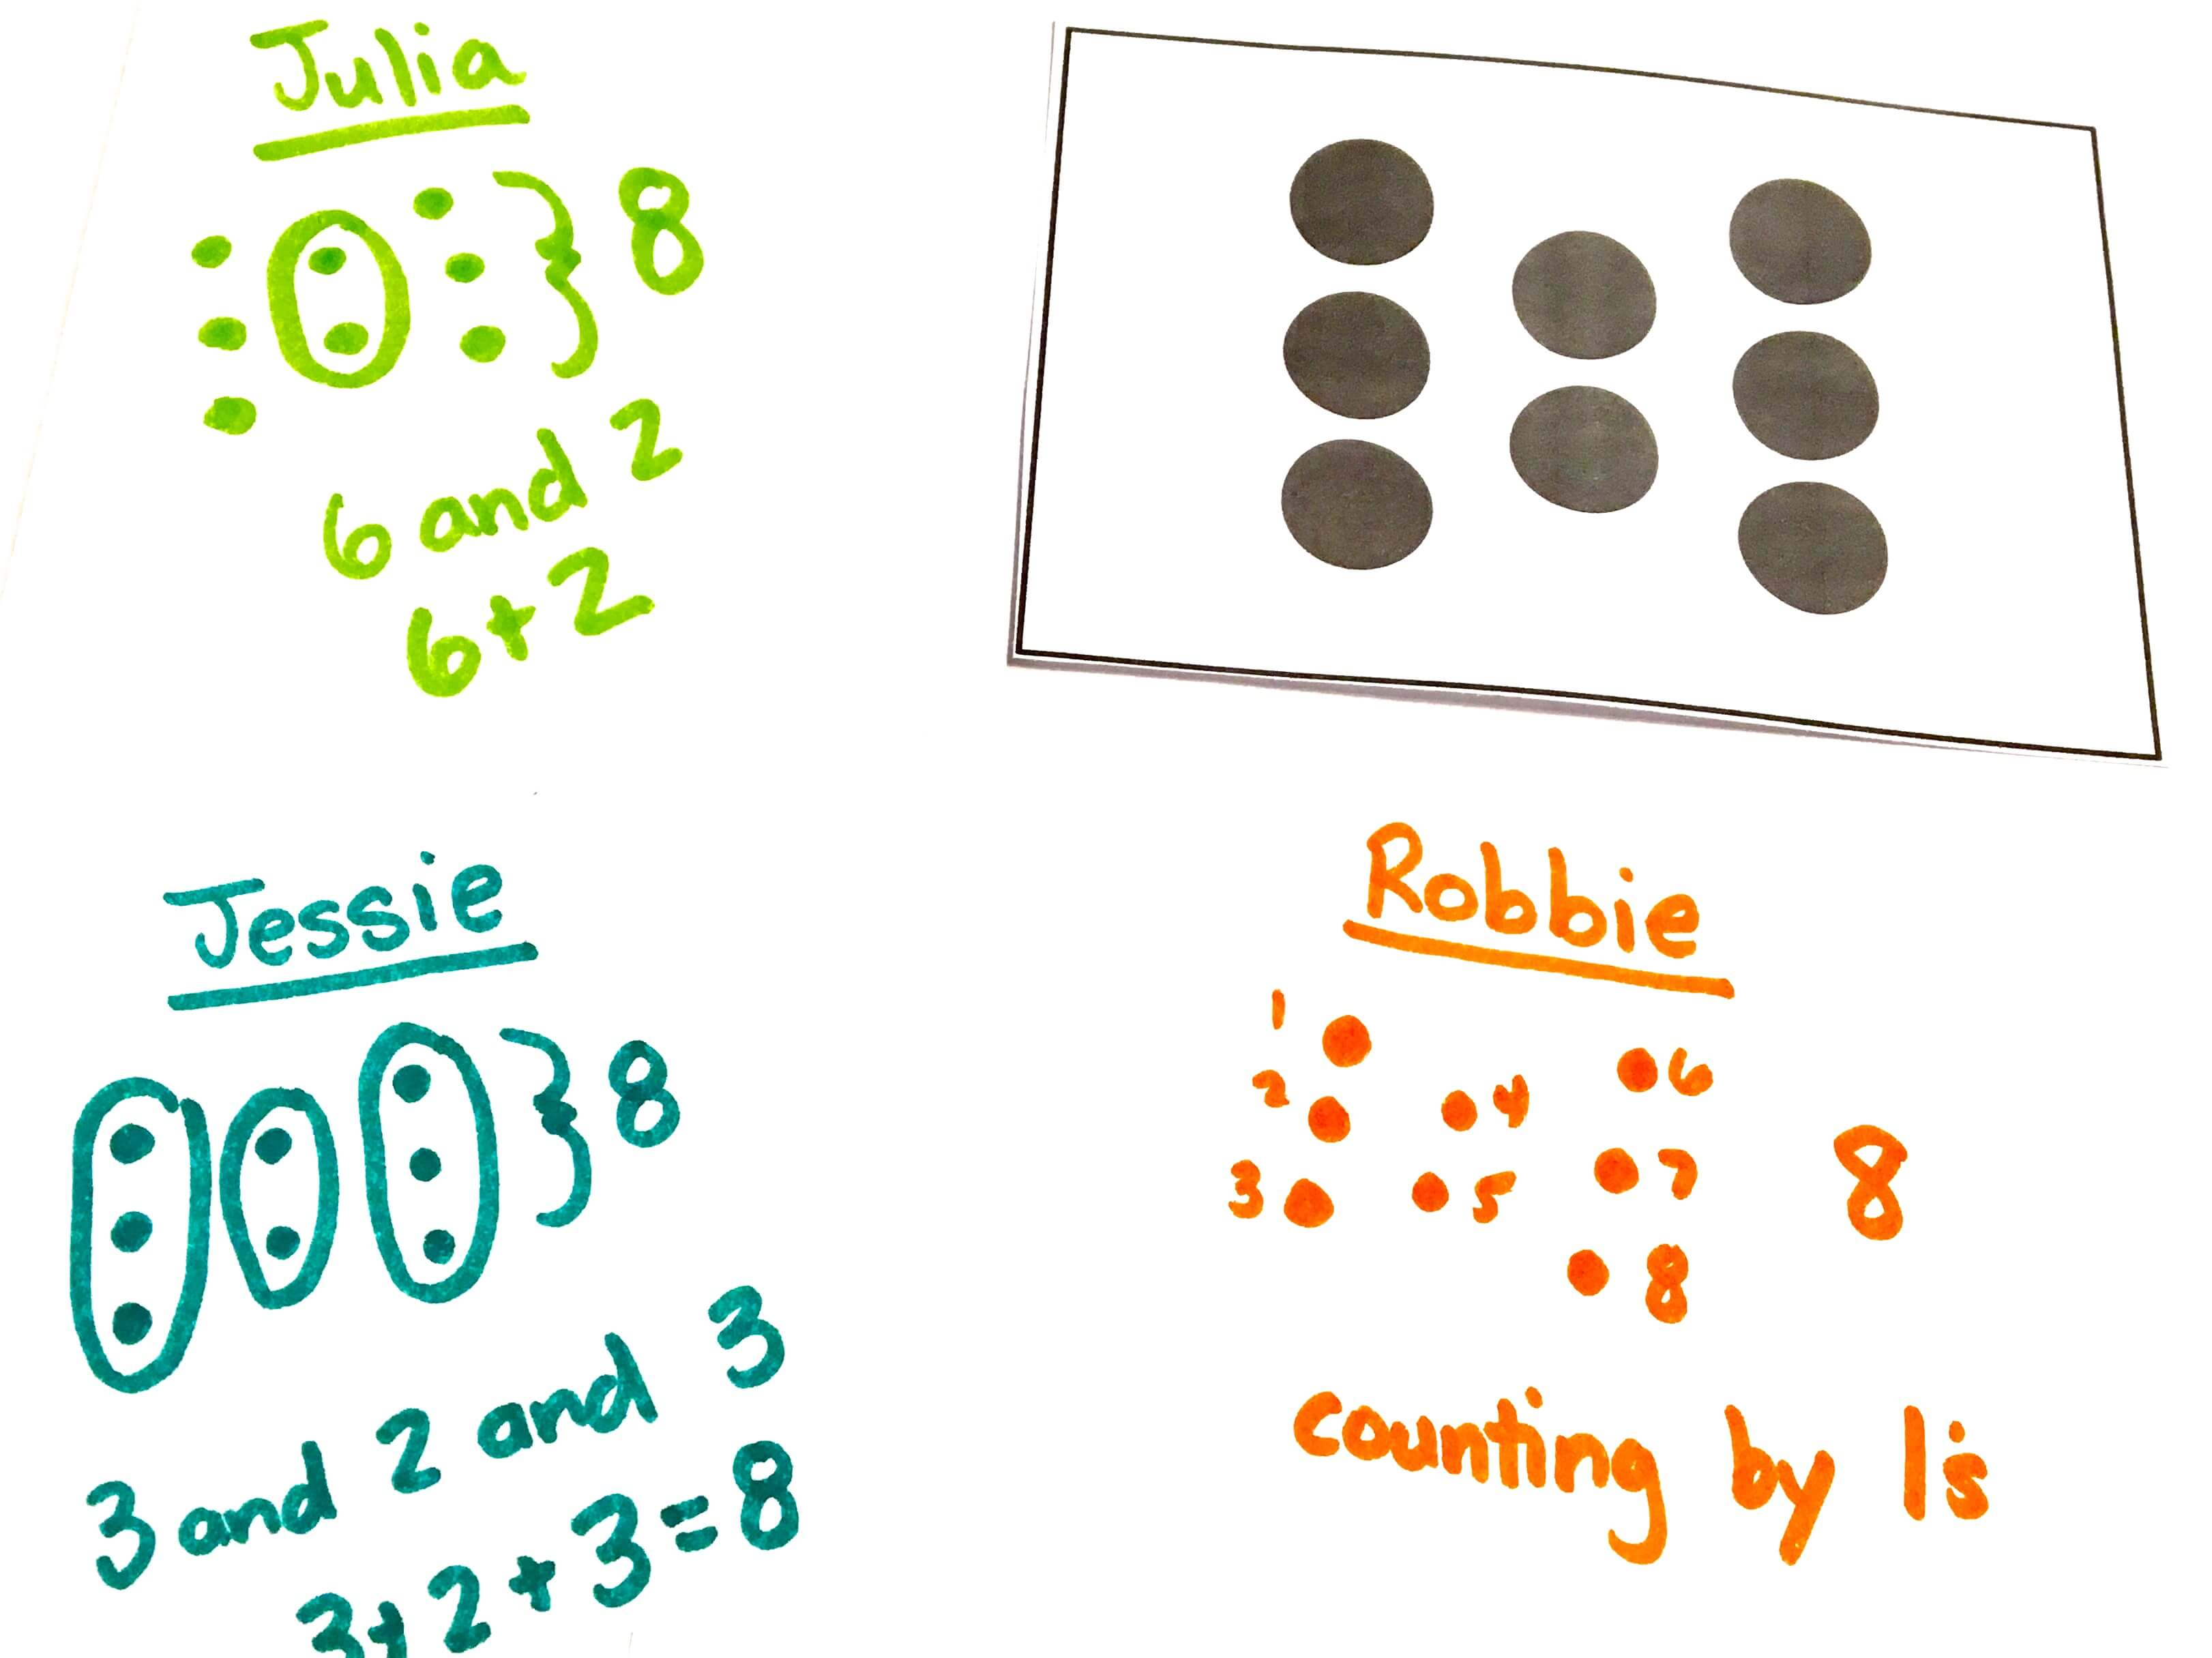 Number Talks can be built into your daily schedule as short, daily exercises aimed at building number sense and flexibility in number thinking.